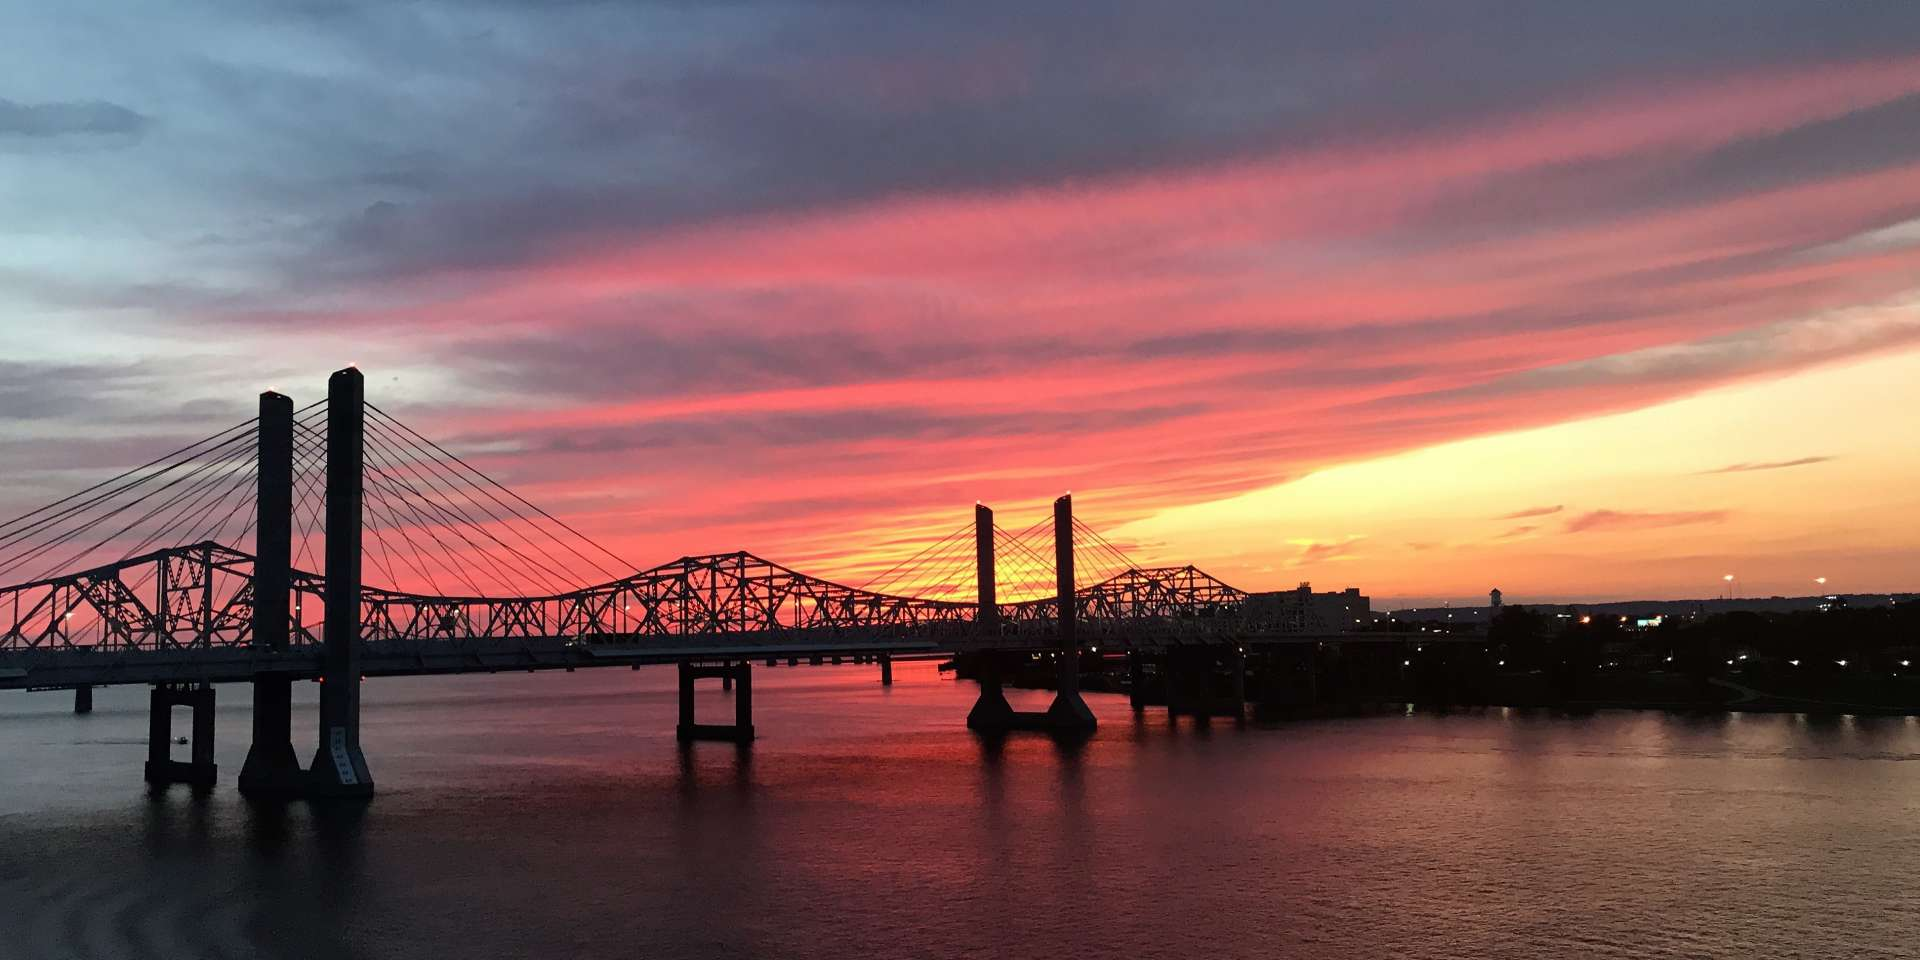 Bridges at Sunset